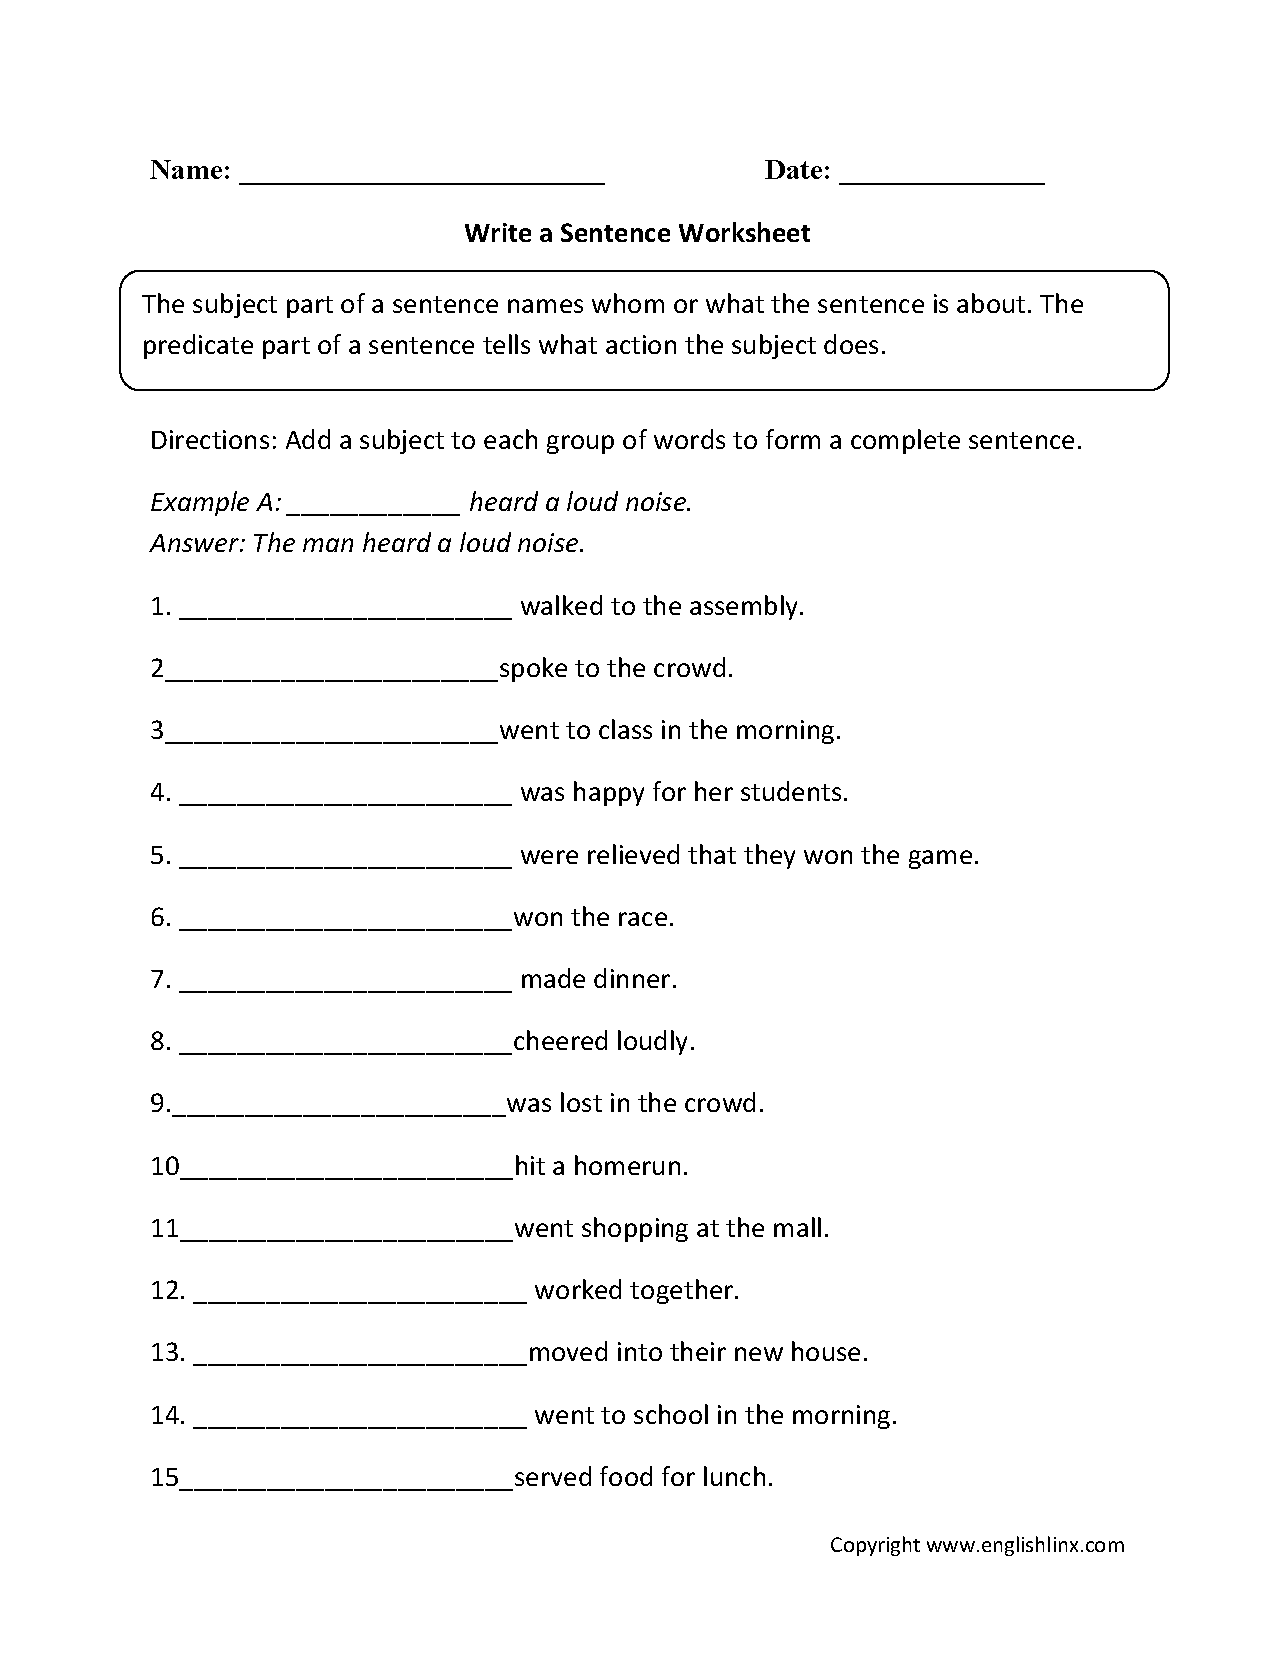 writing sentences worksheets 3rd grade Writing sentences 3rd grade worksheets - showing all 8 printables worksheets are gmrbk pe g3 titlepg, second and third grade writing folder, rd grade spelling dictation.